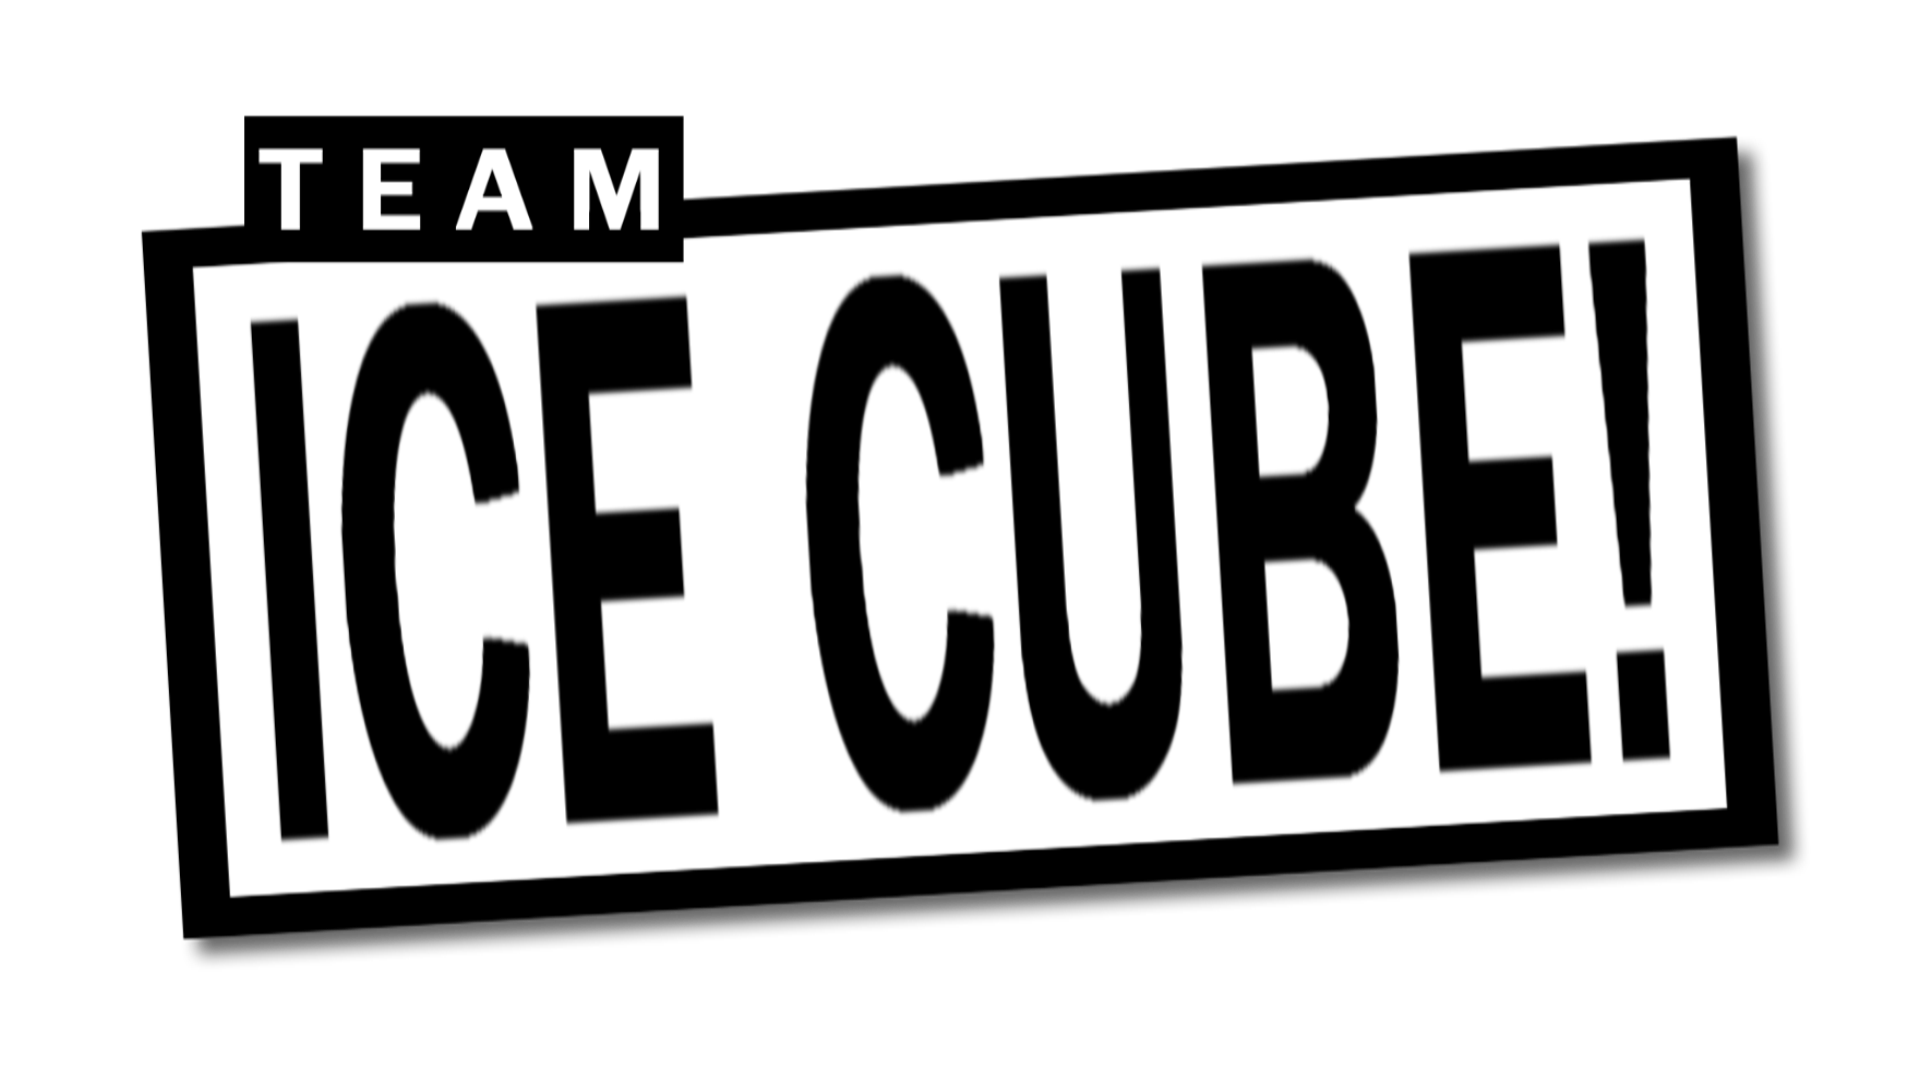 Team_Ice_Cube.png